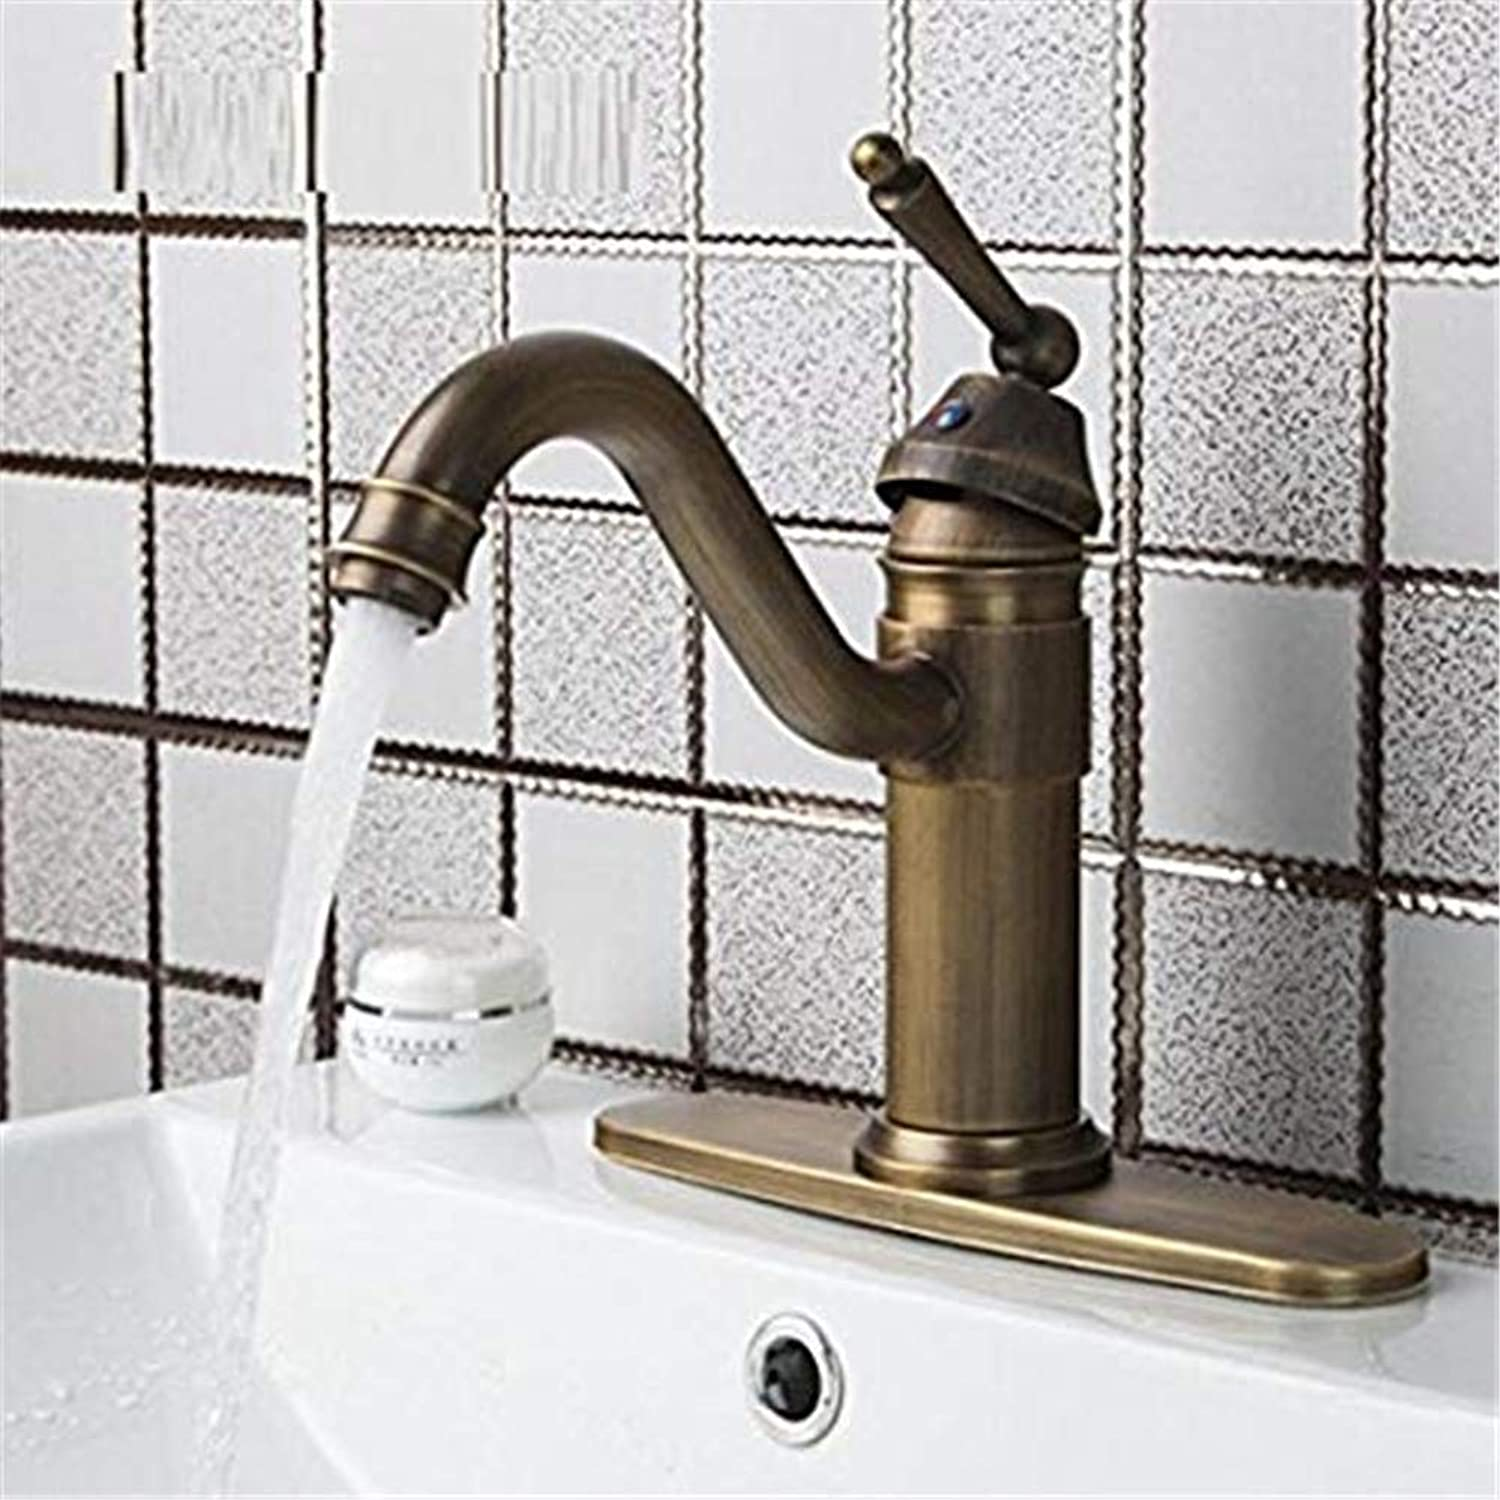 CFHJN HOME Taps Tap Vintage Swivel Antique Brass Single Handle Cover Plate Hot Cold Hose Basin Kitchen Sink Torneiras Faucet Mixer Taps